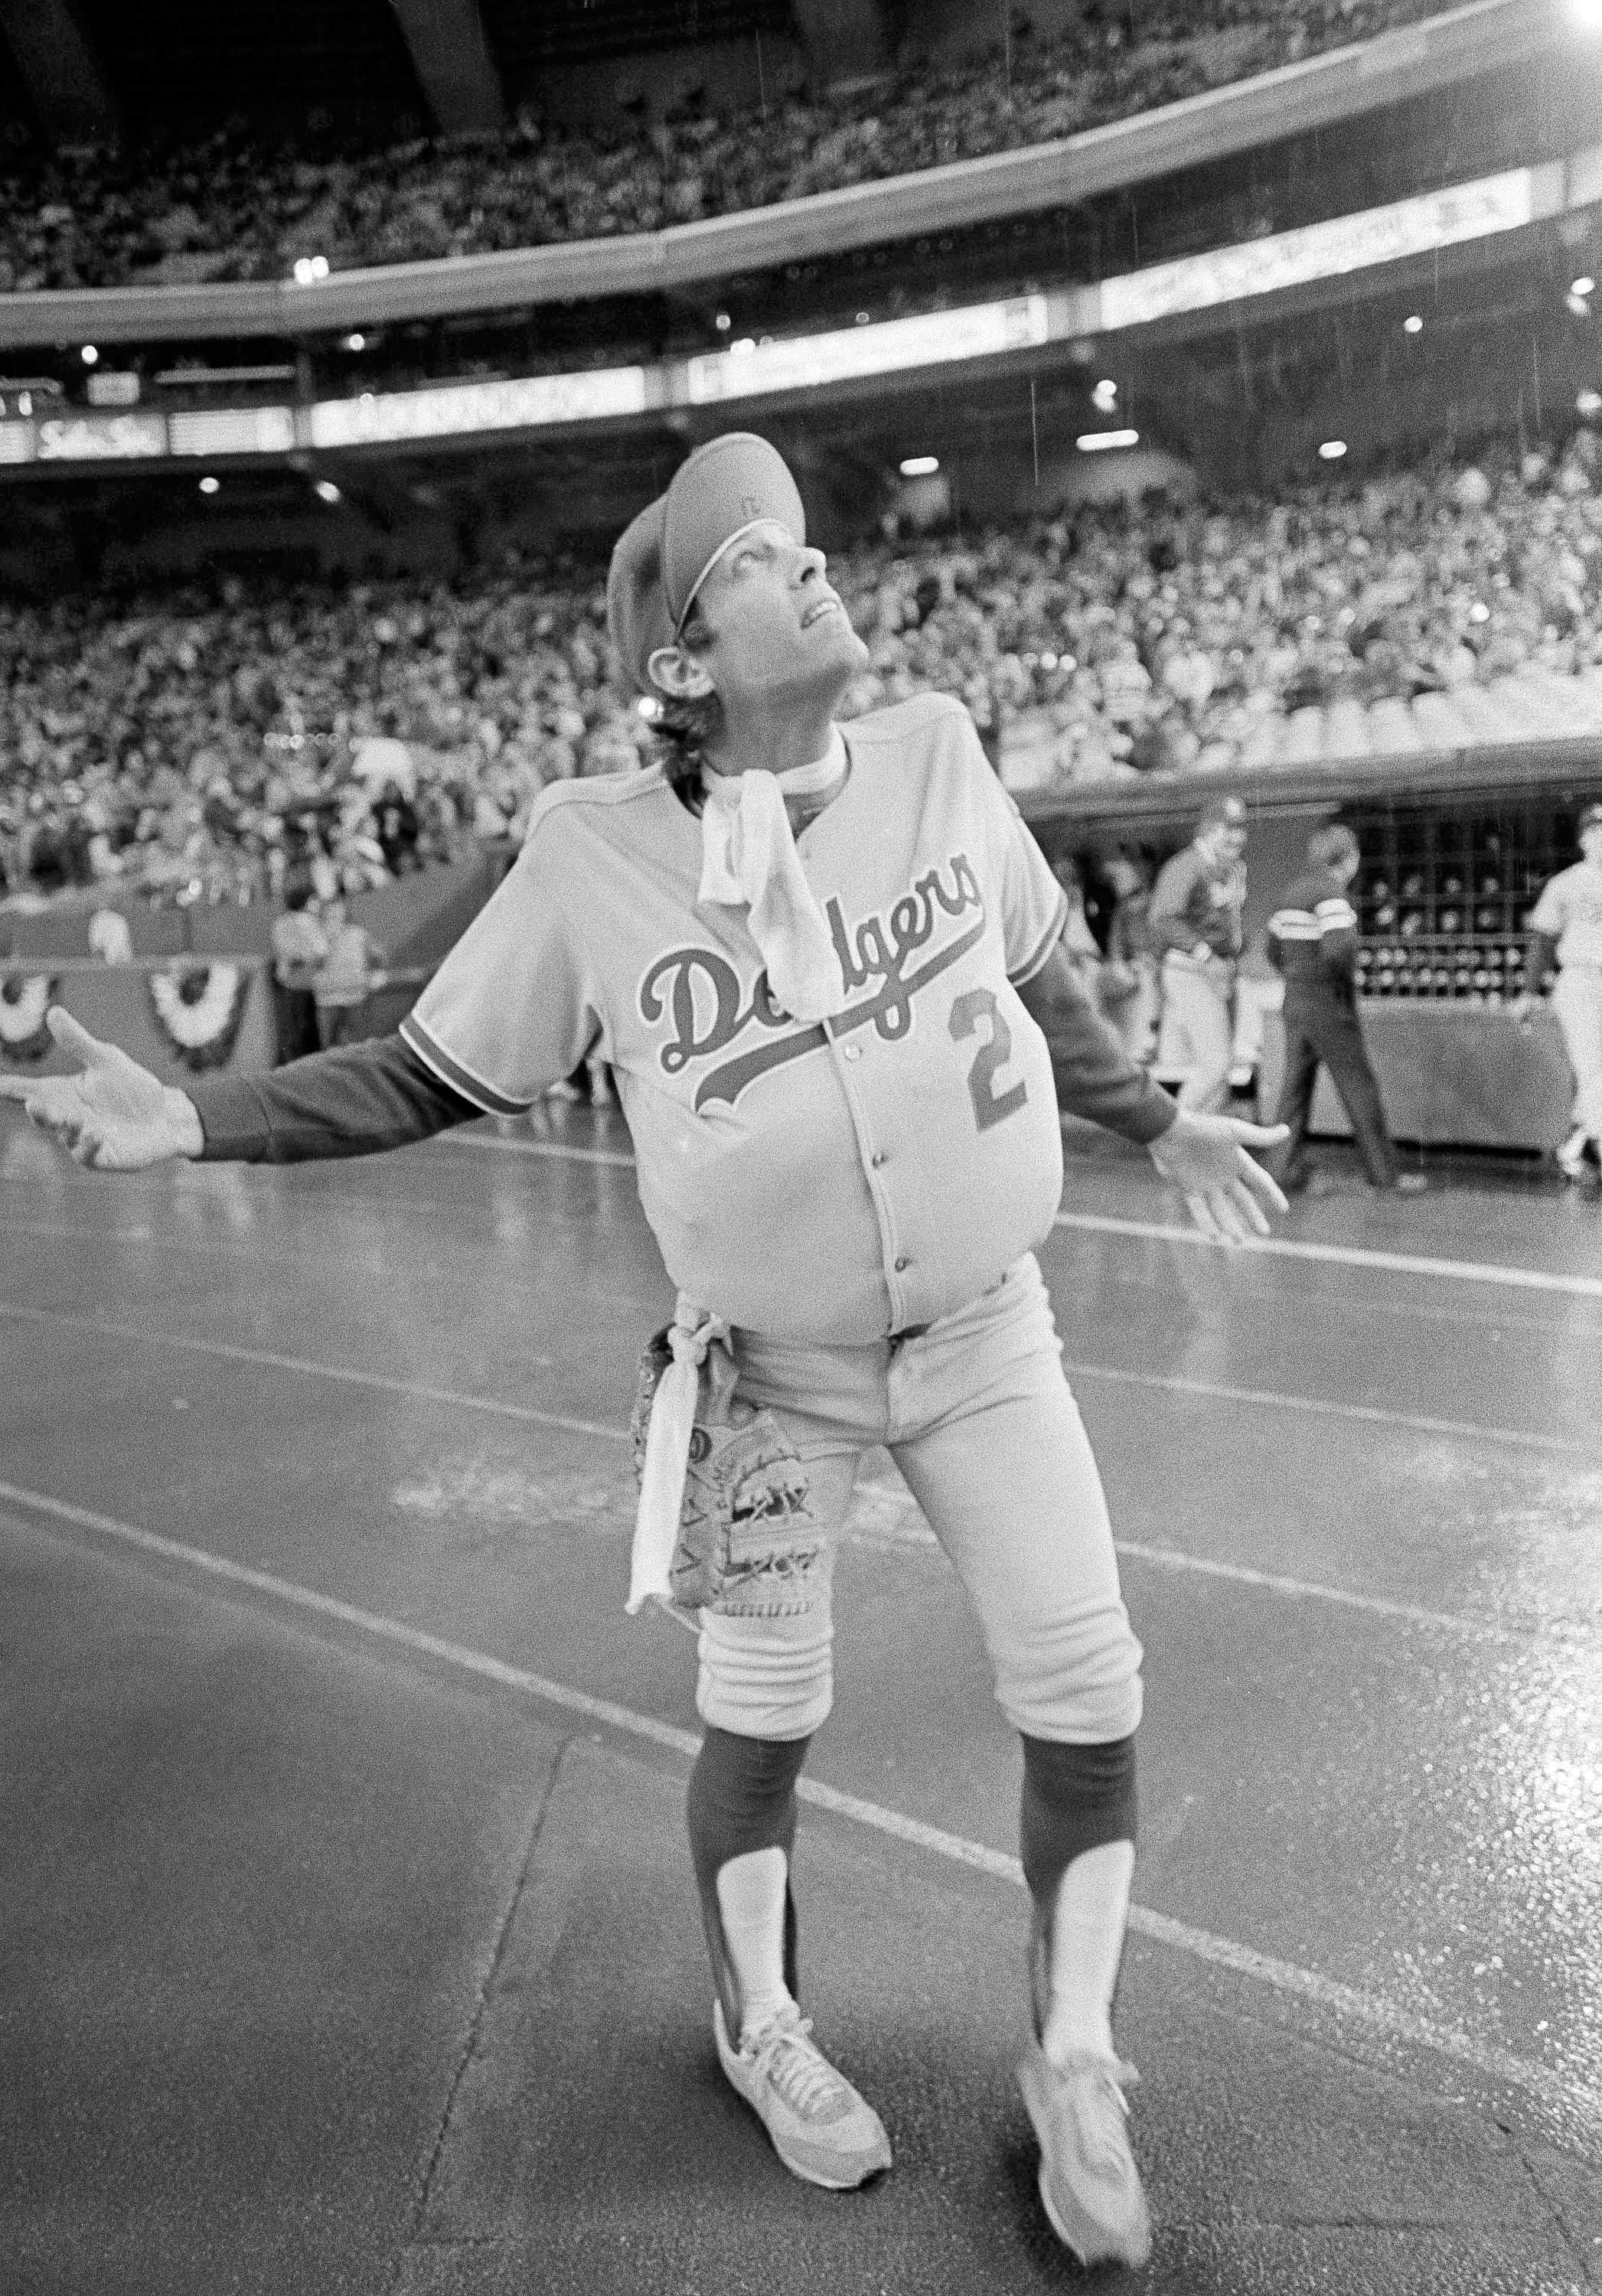 FILE - In this Oct. 18, 1981, file photo, Los Angeles Dodgers outfielder Jay Johnstone, wearing a padded version of manager Tommy Lasorda's uniform, checks the progress of a rain delay before a National League Playoff baseball game with the Expos in Montreal. Johnstone, who won World Series championships as a versatile outfielder with the New York Yankees and Los Angeles Dodgers while being baseball's merry prankster, died Saturday, Sept. 26, of complications from COVID-19 at a nursing home in Granada Hills, Calif., his daughter Mary Jayne Sarah Johnstone said Monday, Sept. 28, 2020. He was 74. He also from dementia in recent years, his daughter said. (AP Photo/Barrett, File)